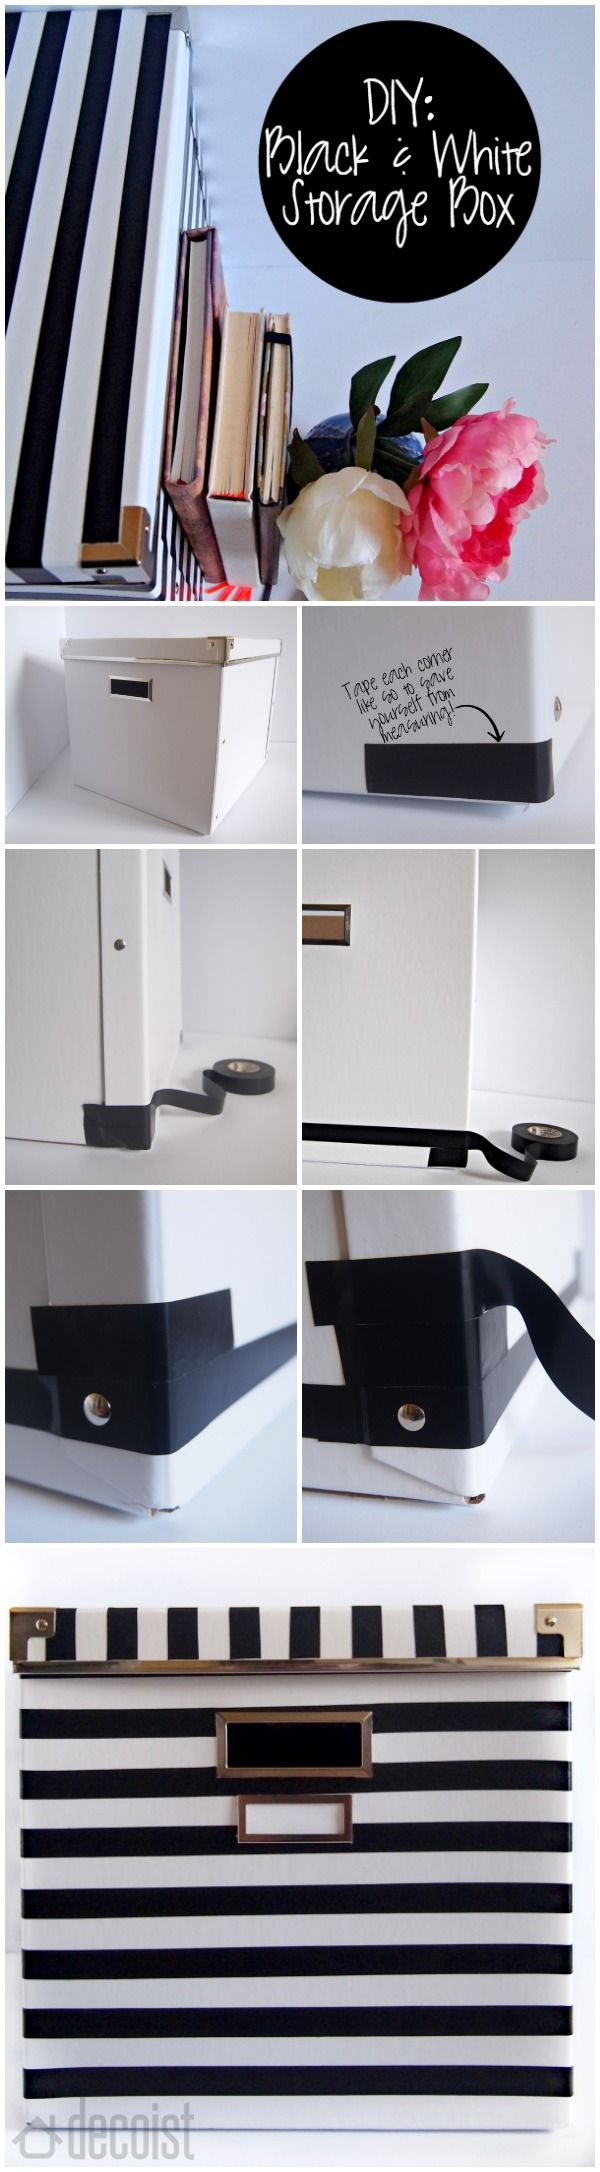 Transforming an ordinary box into a black and white storage unit using tape #DIY Kate spade